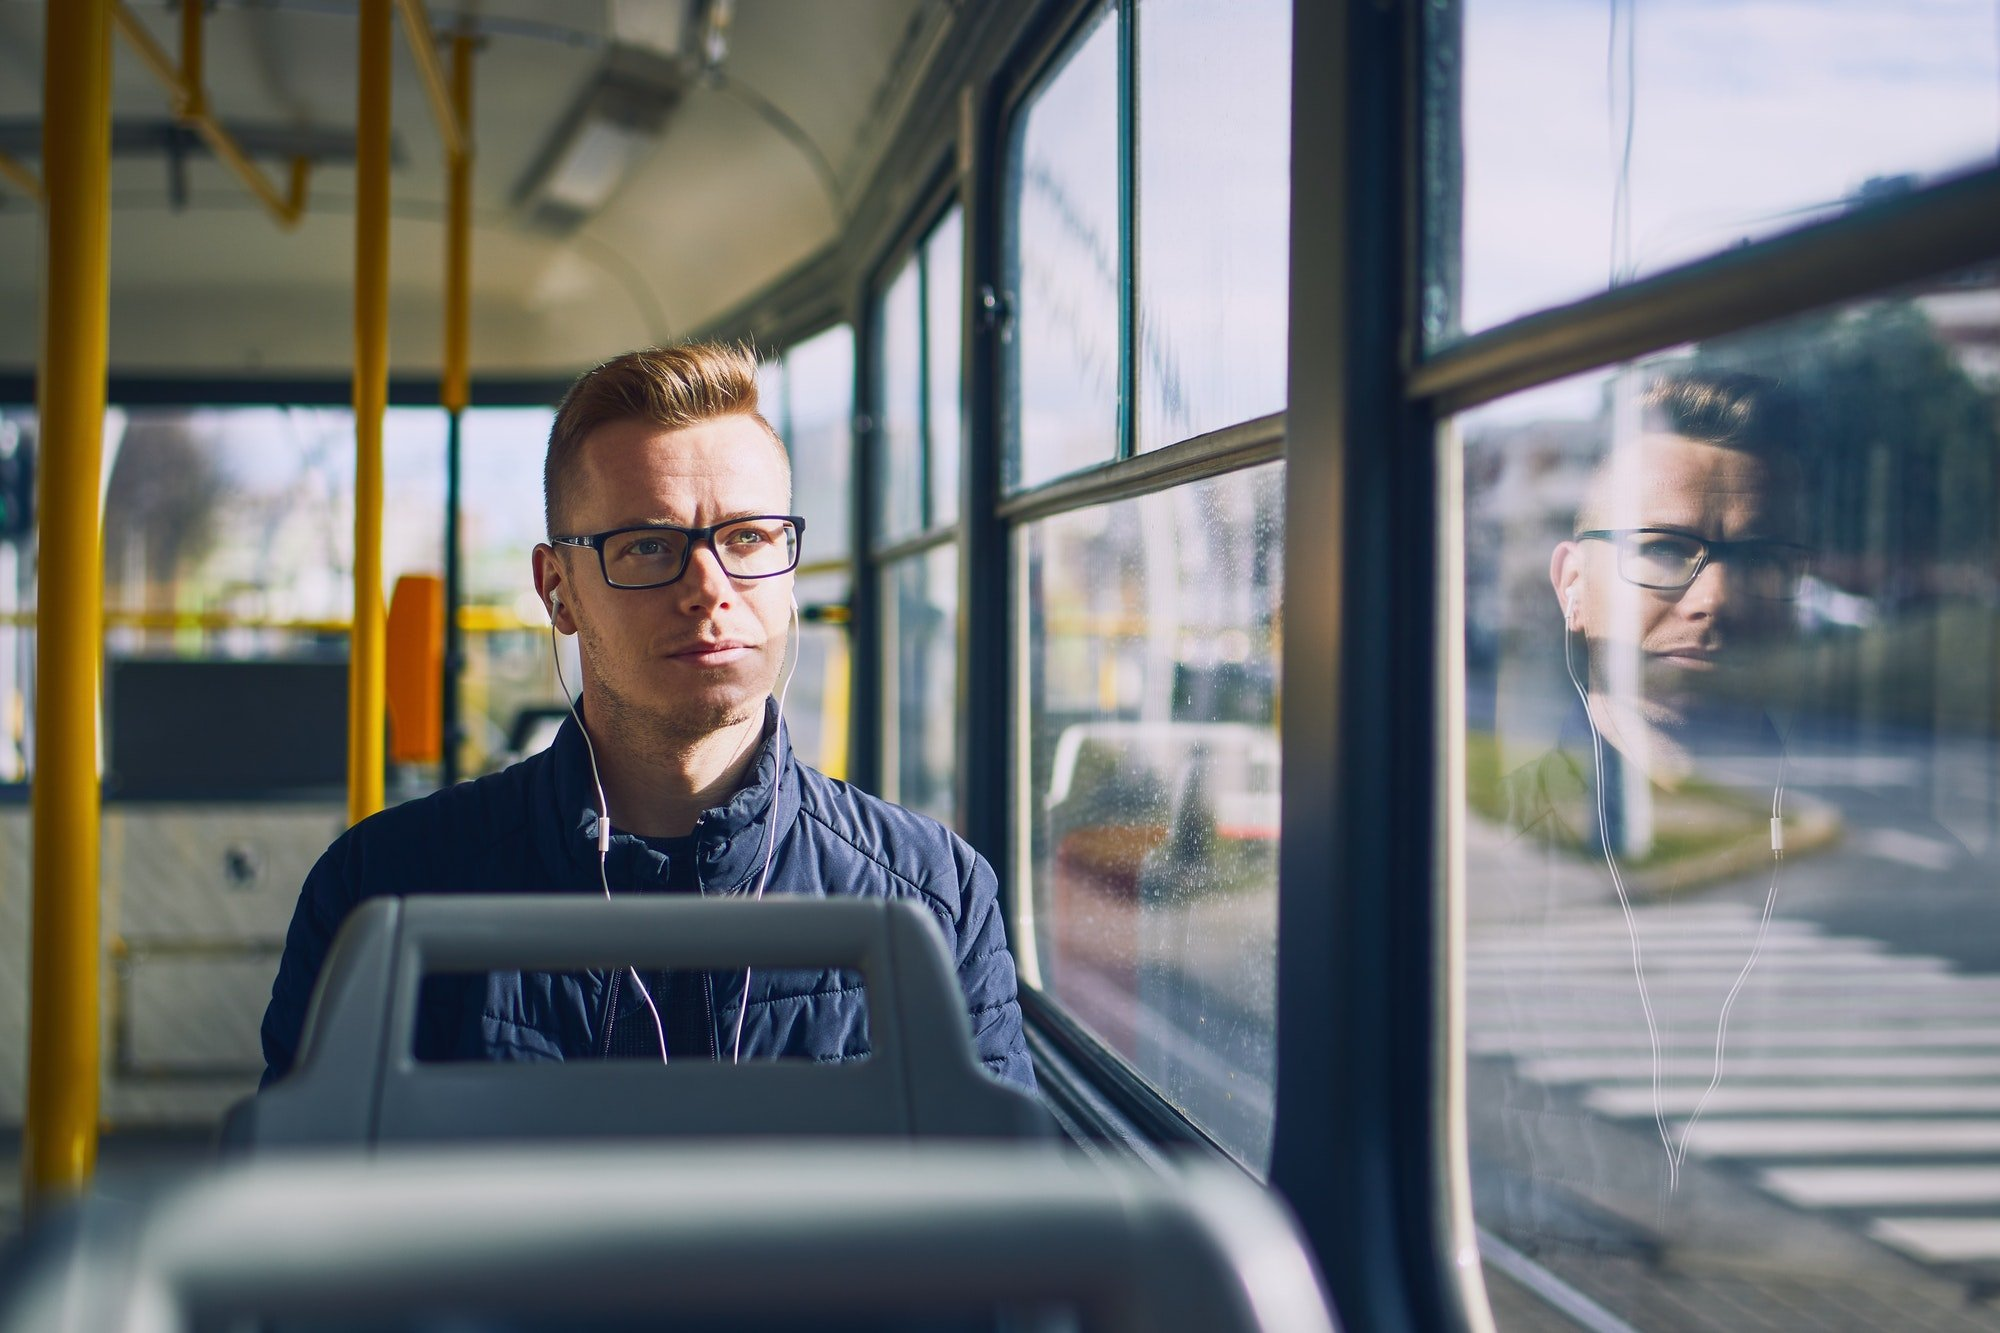 Young man listening music in tram. Travel by public transportation.